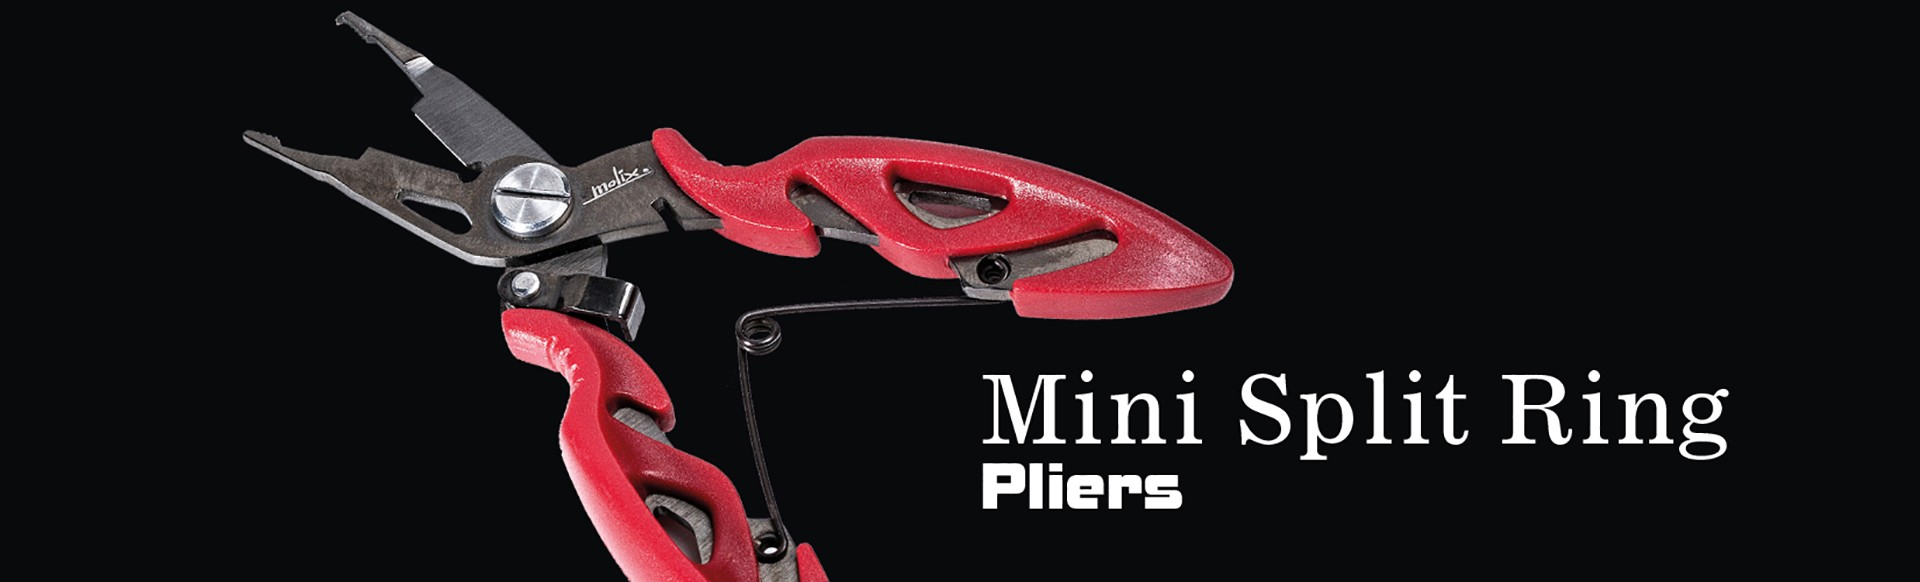 Mini Split Ring Pliers